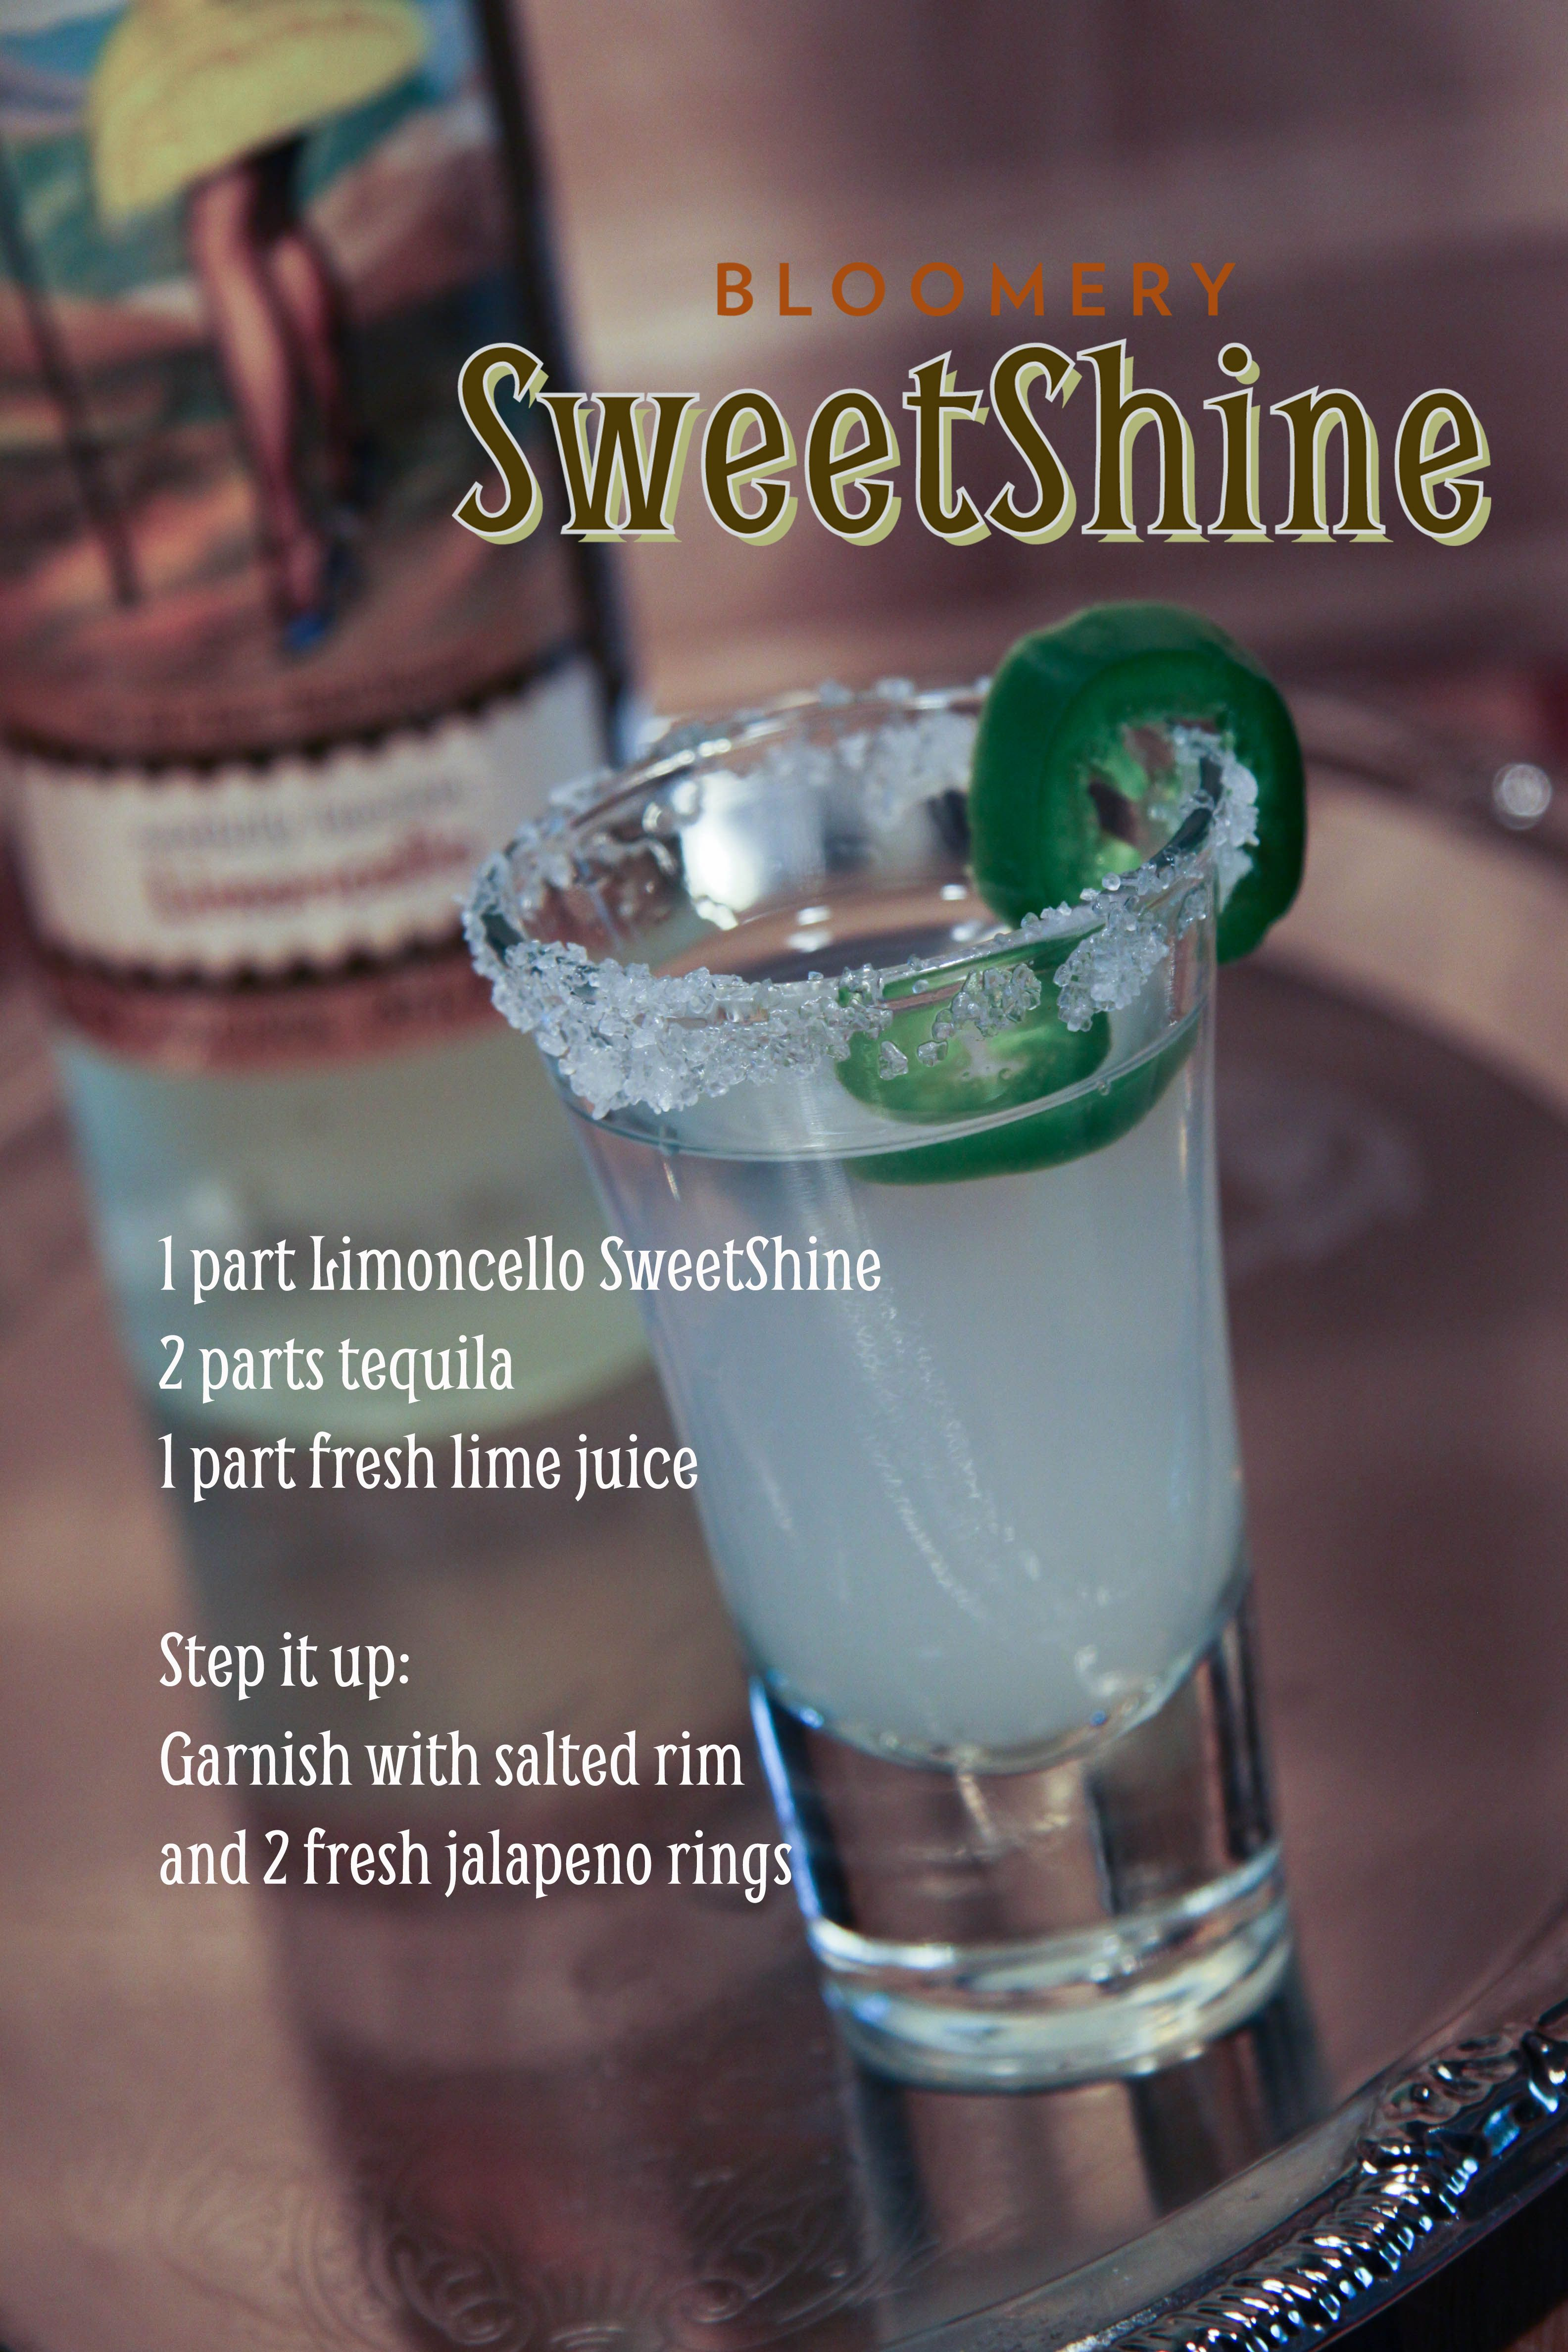 SweetShine, cocktail, moonshine, mixology, Limoncello, tequila, recipe, gluten free  www.bloomerysweetshine.com